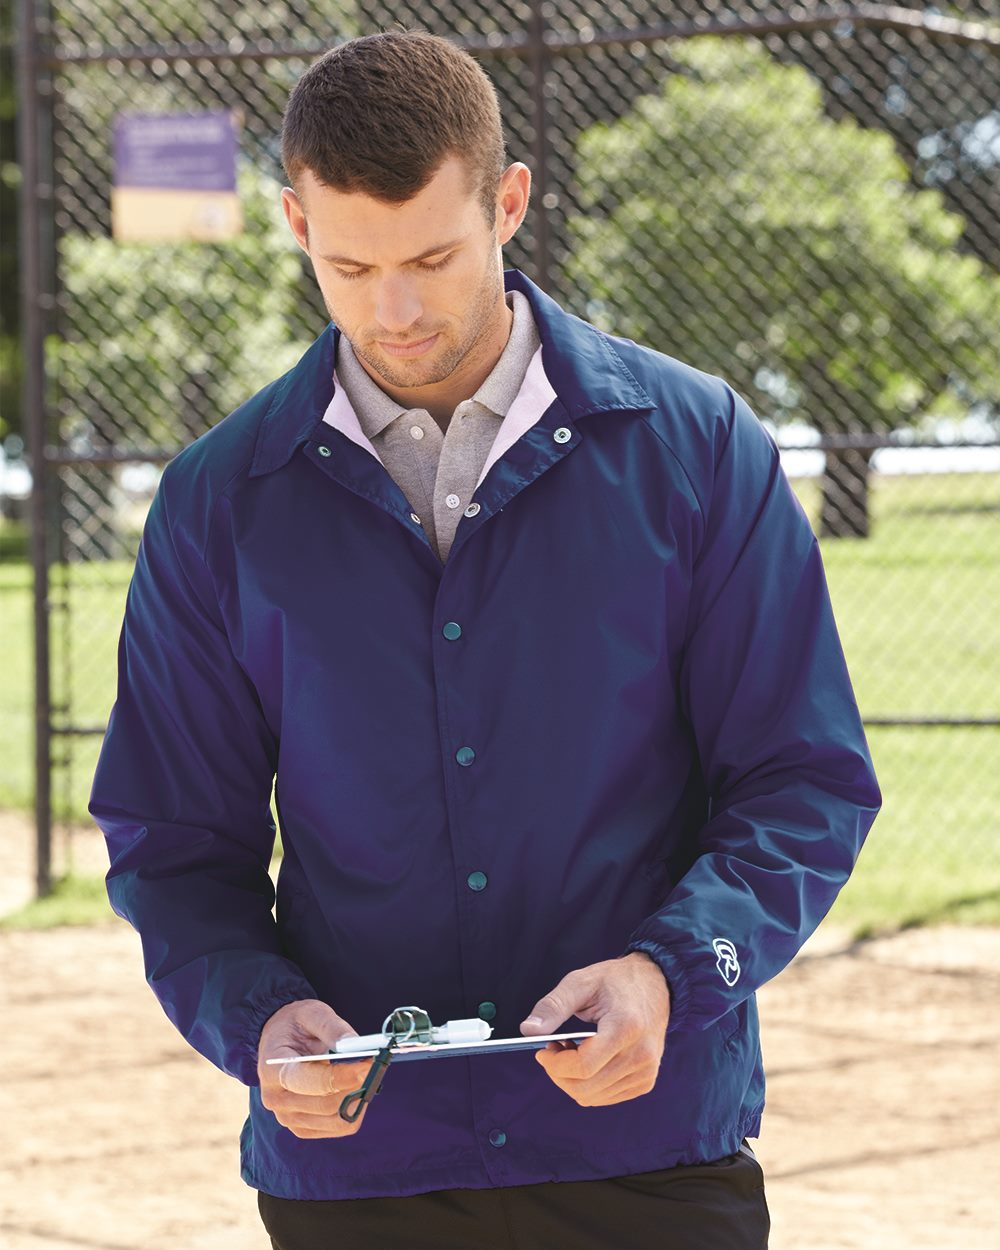 Rawlings 9718 - Nylon Coach's Jacket